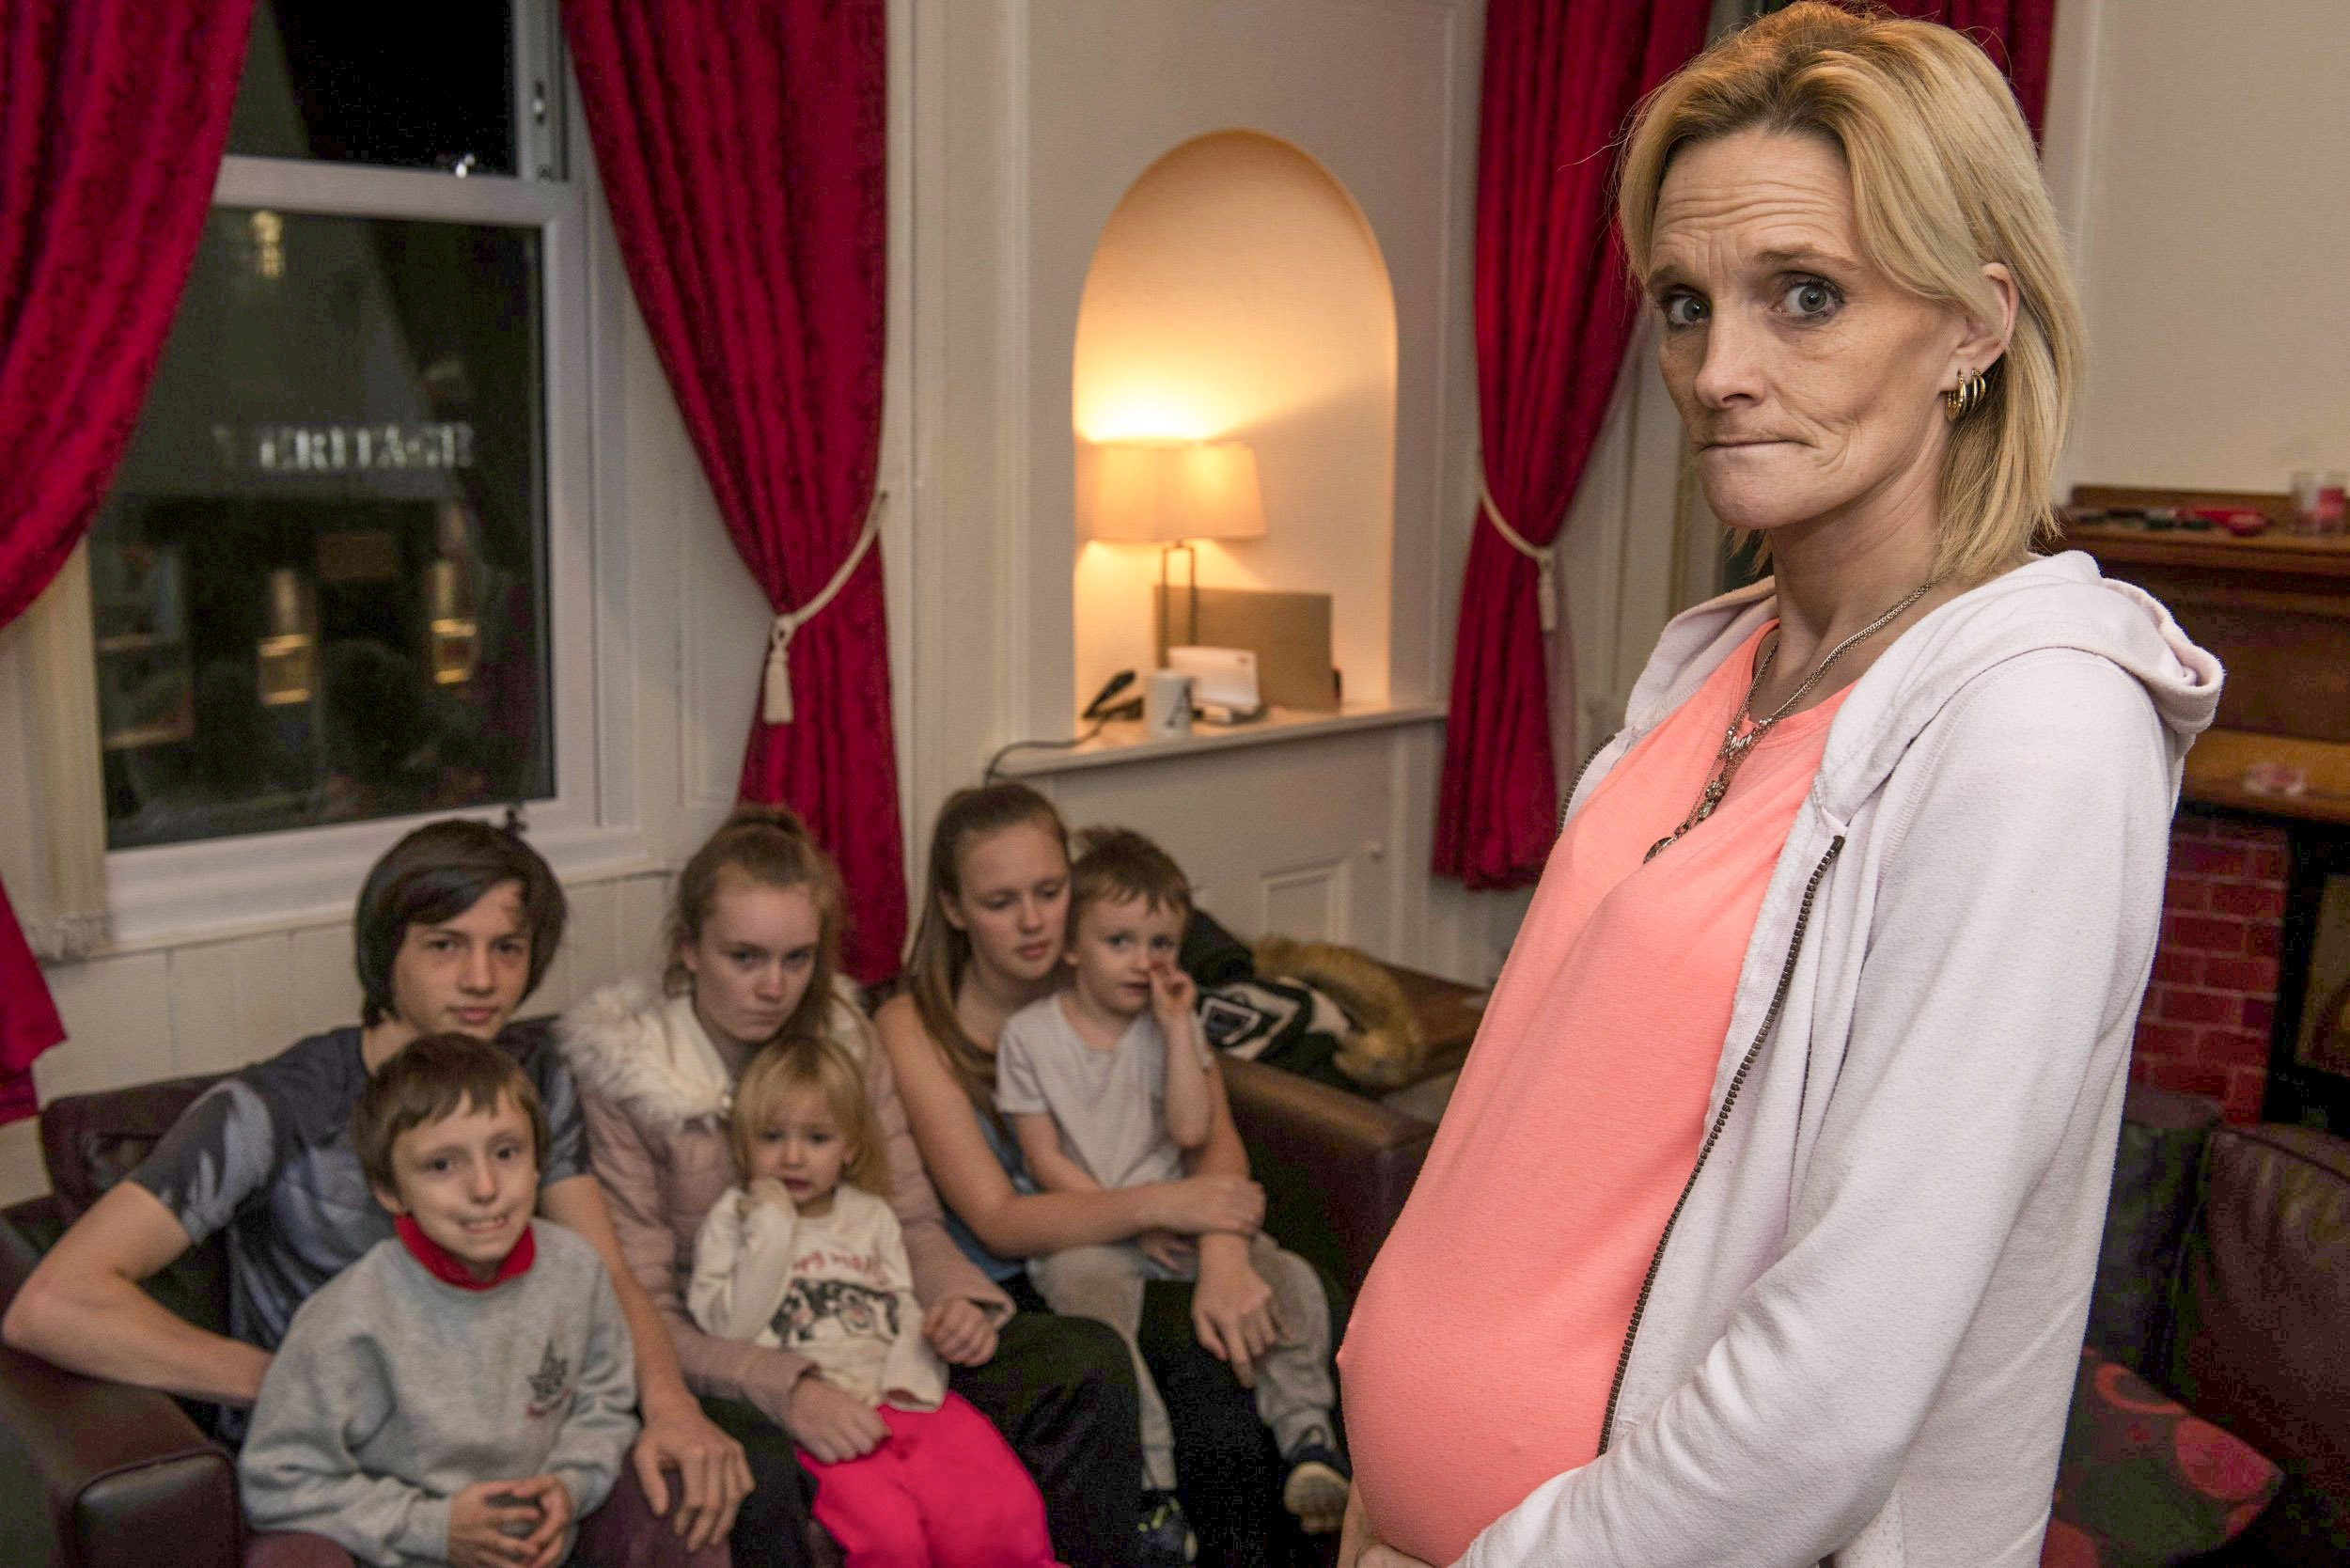 Alana Burns, 38, who is due to give birth in March and lives with her children Alisha, aged two, Steven, aged four, Cayden, aged seven, Leigh, aged 15, and Caitlin, 16. Adult children Stewart, 20, and Bryan, 19, also stay with her in a flat above a pub in Bathgate, West Lothian. The flat has four bedrooms but the family are squeezing into three of them as a leak makes one bedroom uninhabitable. See SWNS story SWSCpregnant; A mum-of-seven who is pregnant with twins described living in a four-bedroom council flat as ???hell??? and demanded to be rehoused. Alana Burns, 38, is due to give birth in March and lives with her children Alisha, aged two, Steven, aged four, Cayden, aged seven, Leigh, aged 15, and Caitlin, 16. Adult children Stewart, 20, and Bryan, 19, also stay with her in a flat above a pub in Bathgate, West Lothian. The flat has four bedrooms but the family are squeezing into three of them as a leak makes one bedroom uninhabitable.